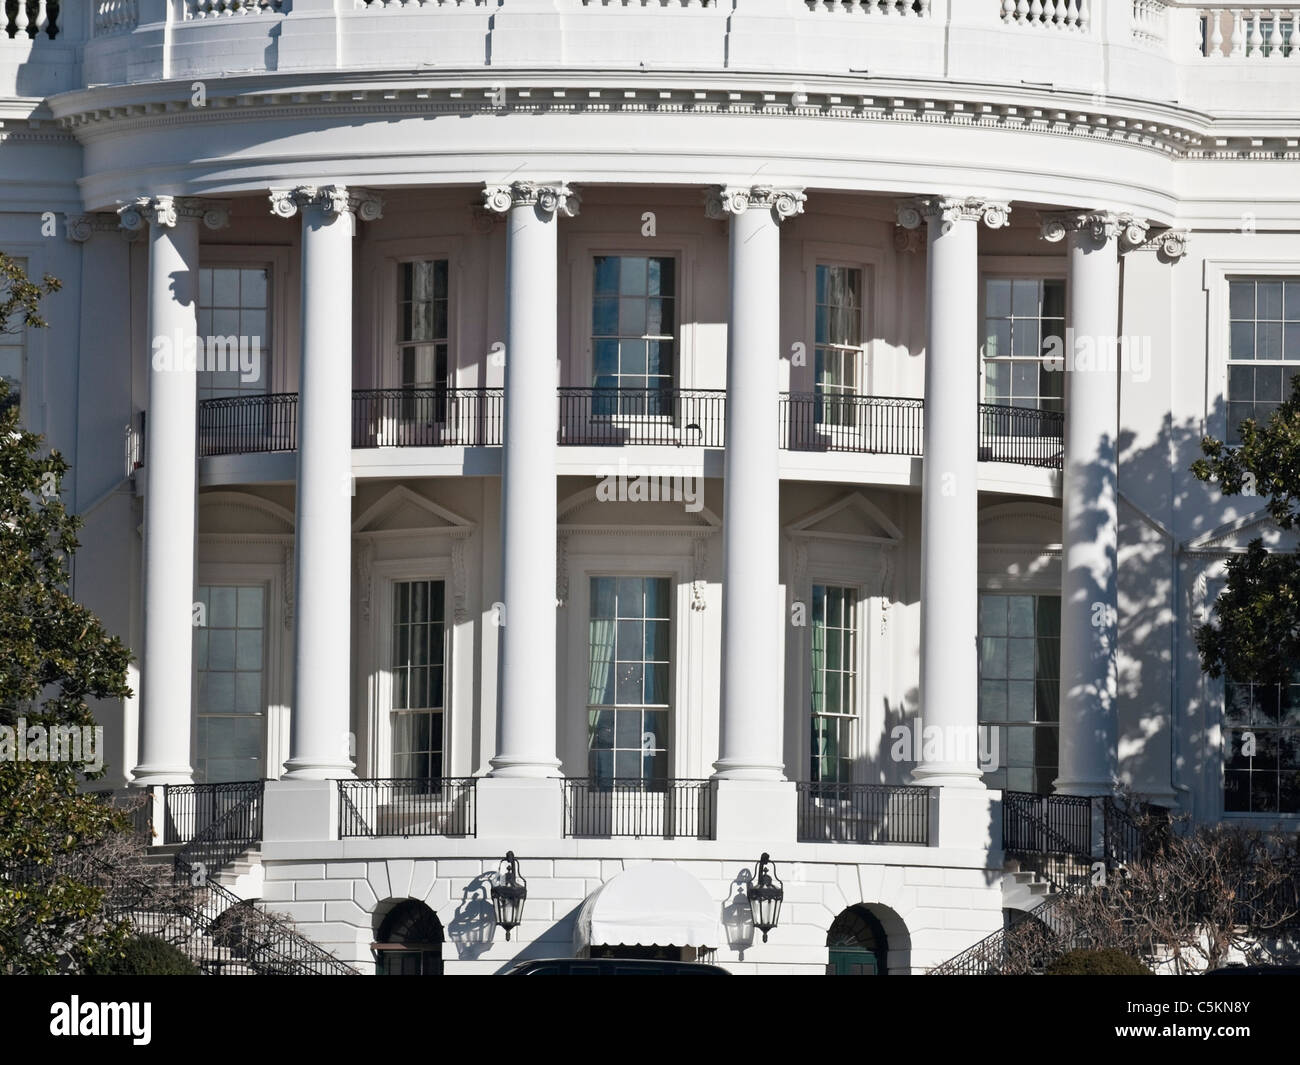 The south portico of the White House in Washington DC. - Stock Image